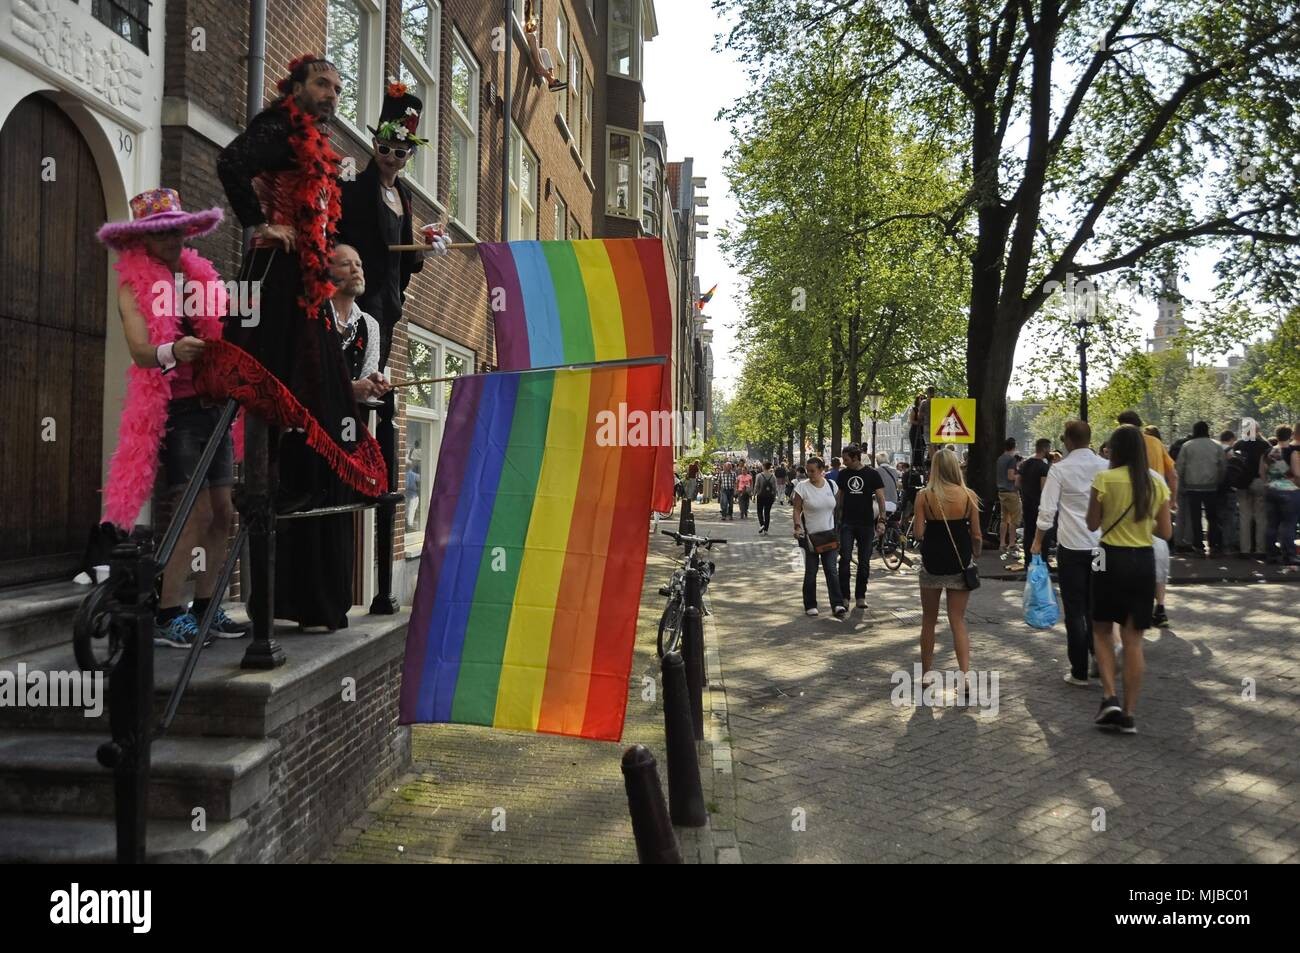 Amsterdam, Netherlands: Four men in costumes standing on a balcony, waiving rainbow flags to the crowd at the traditional Amsterdam gay pride event. Stock Photo